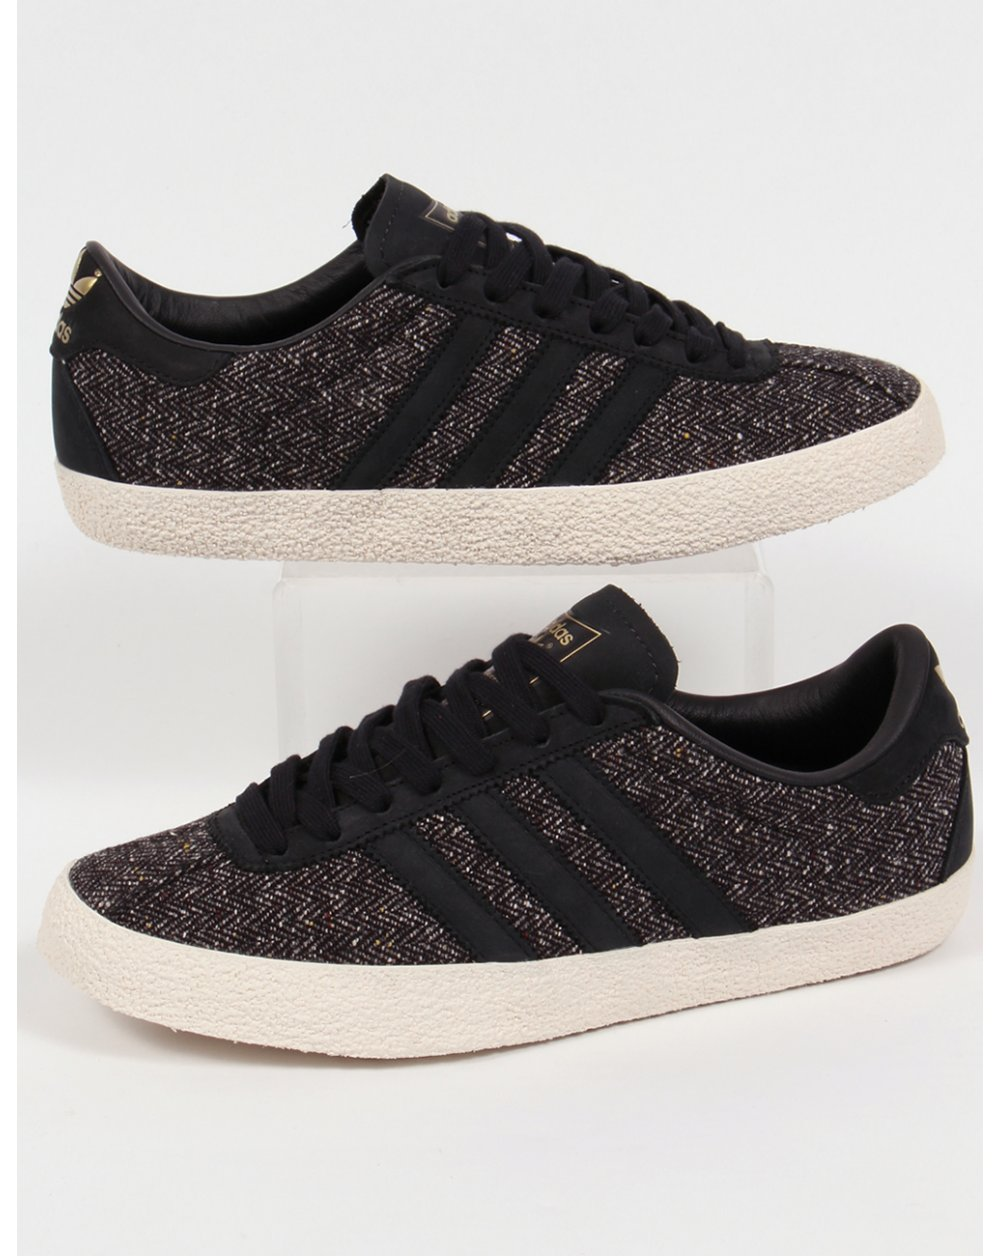 adidas gazelle total black